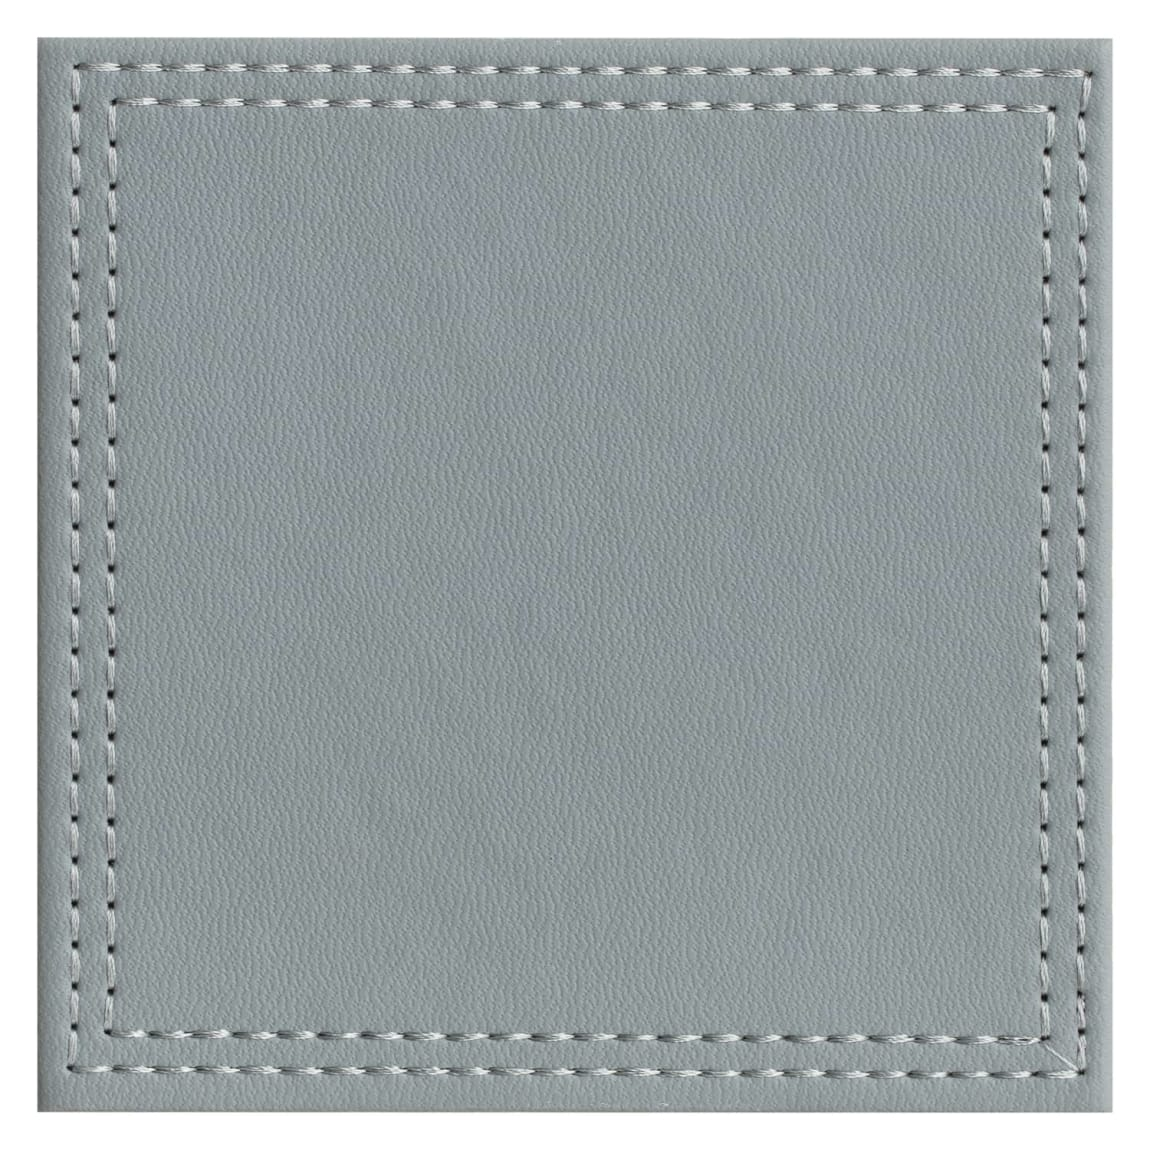 Leatherette Coasters 6pk - Grey